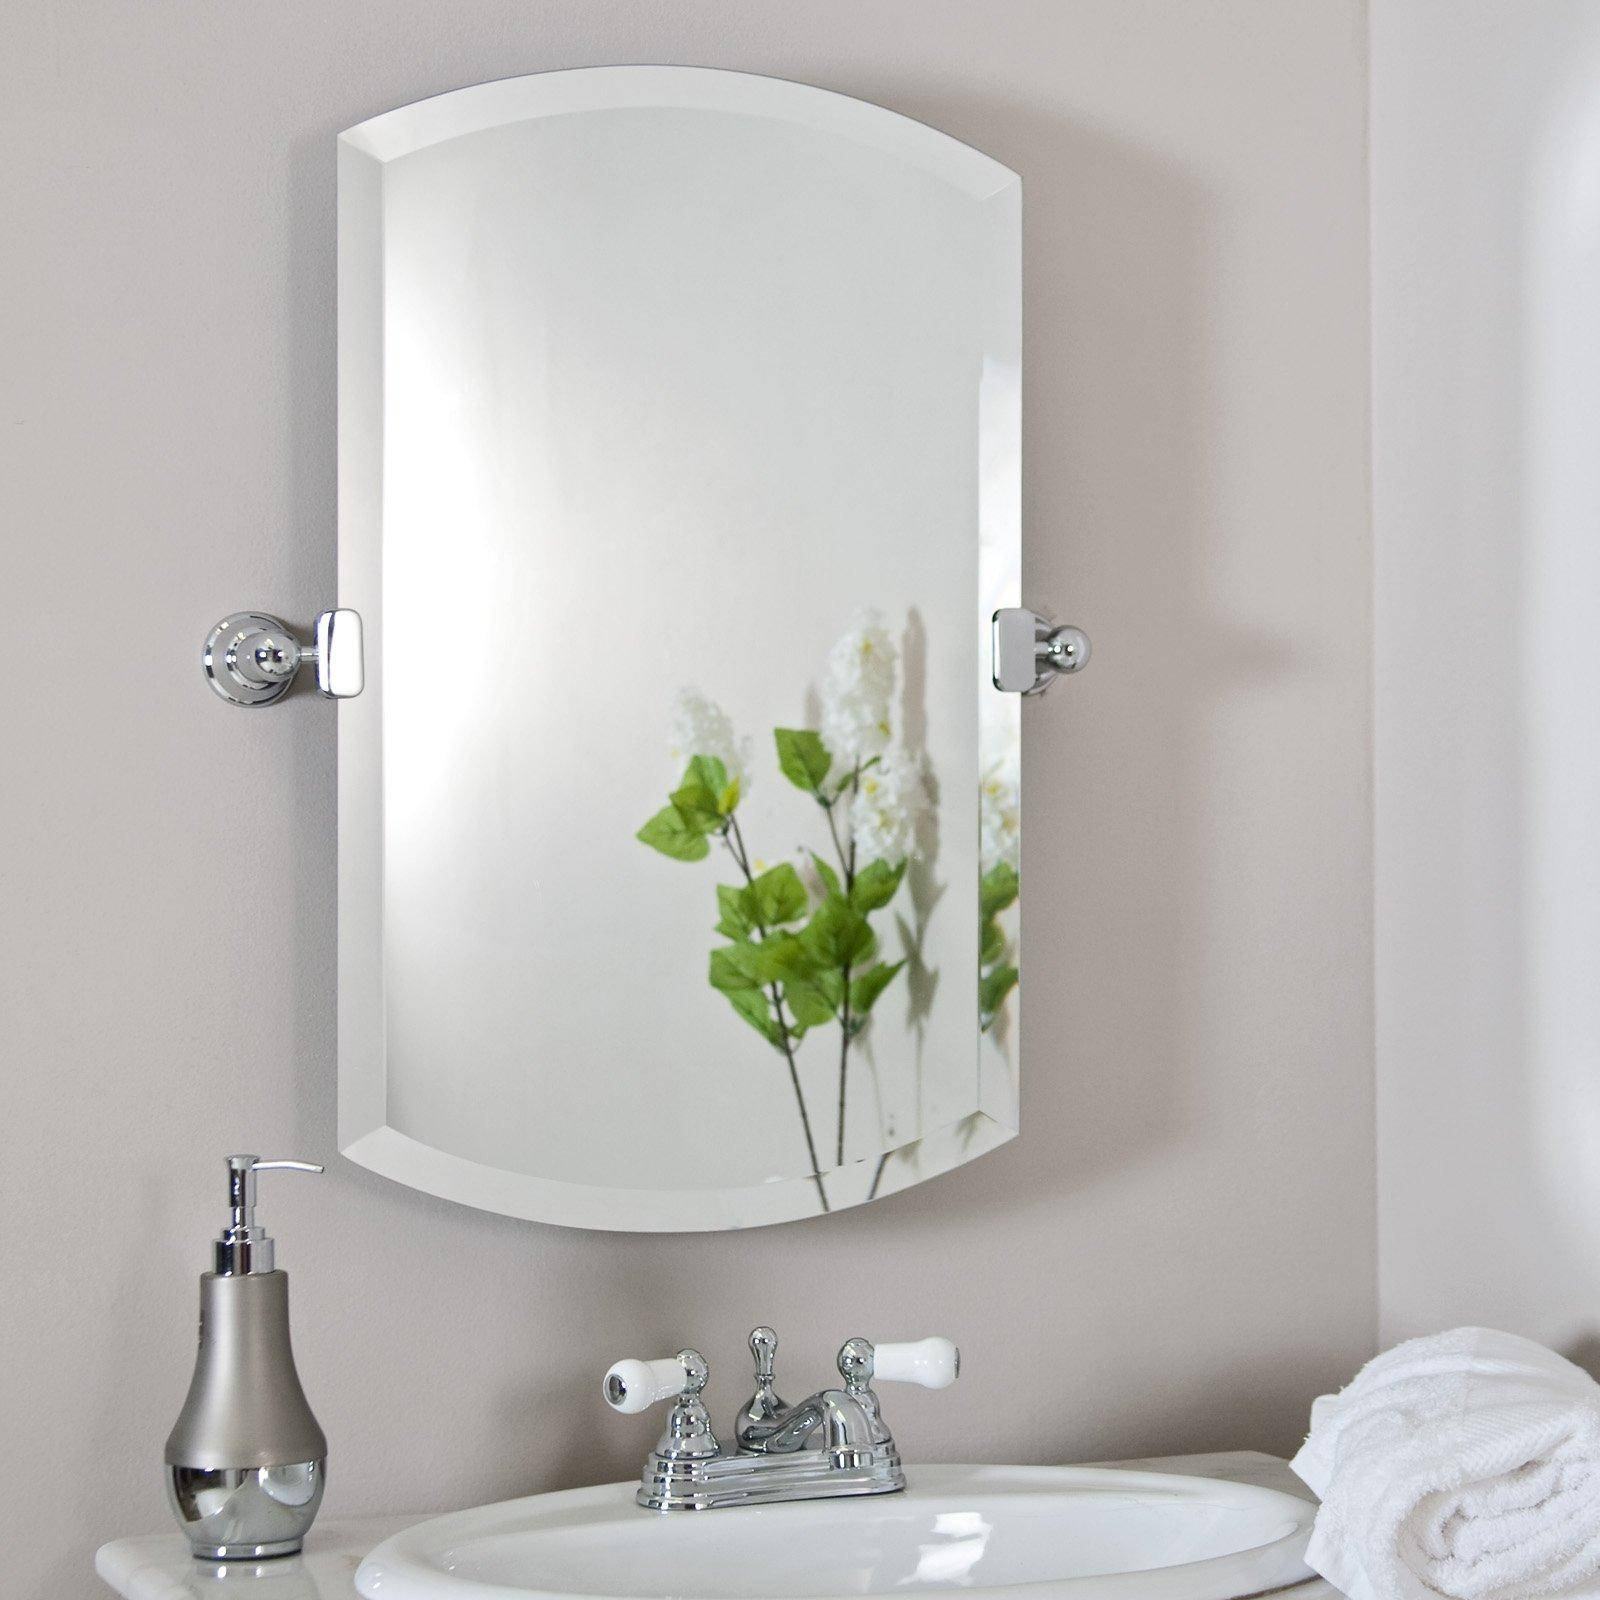 Awesome Small Bathroom Mirrors Small Bathroom Mirrors. Spacious pertaining to Unusual Mirrors for Bathrooms (Image 1 of 25)